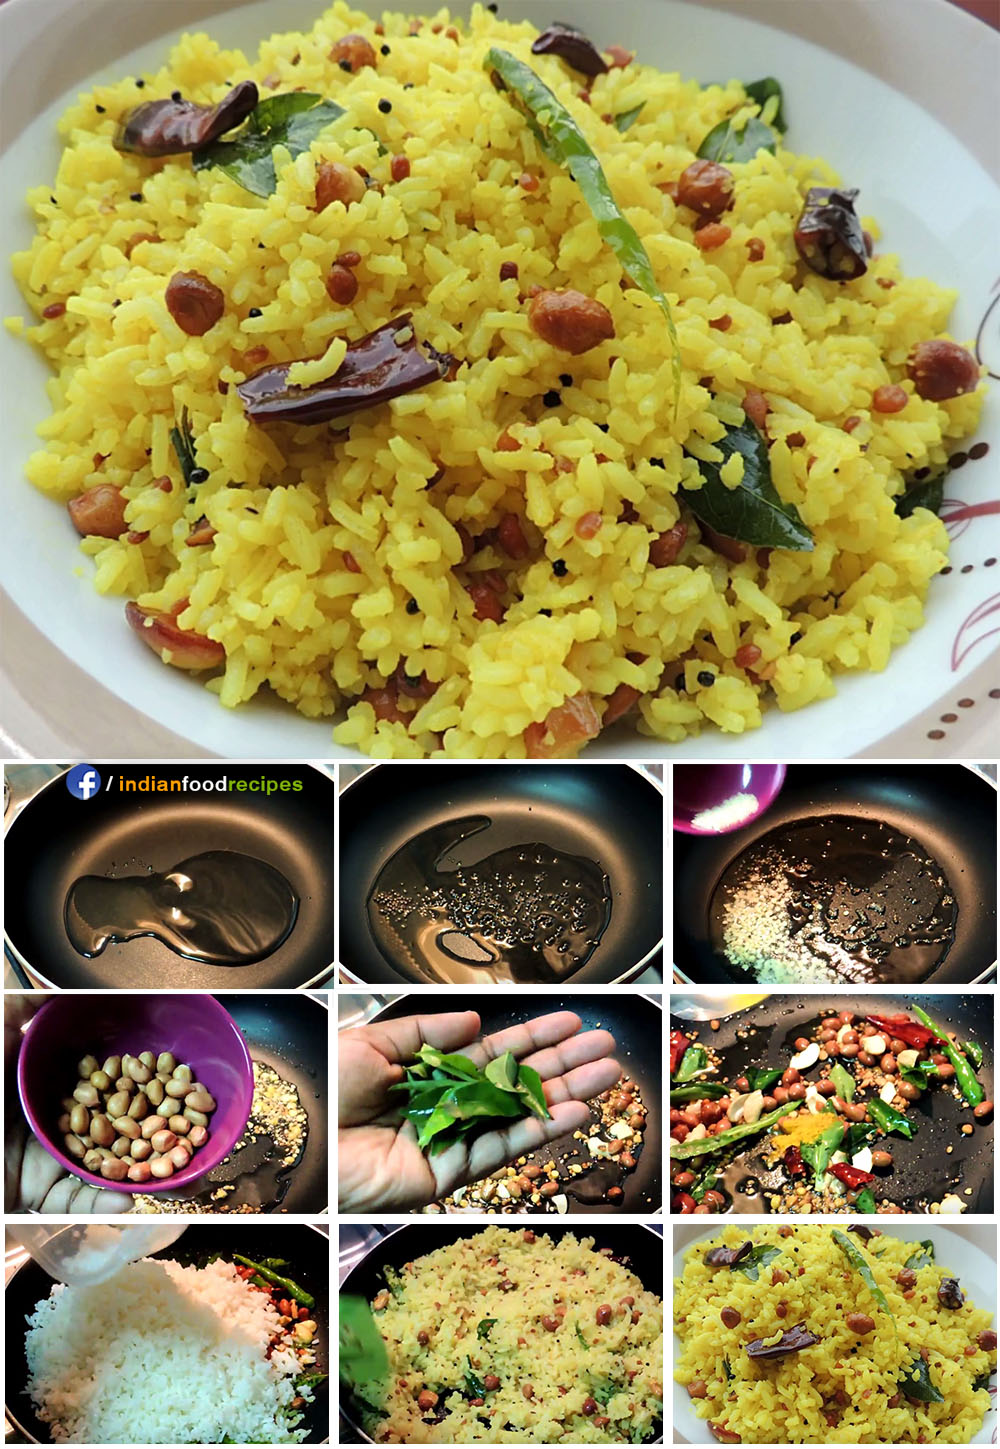 Lemon Rice no onion no garlic recipe step by step pictures